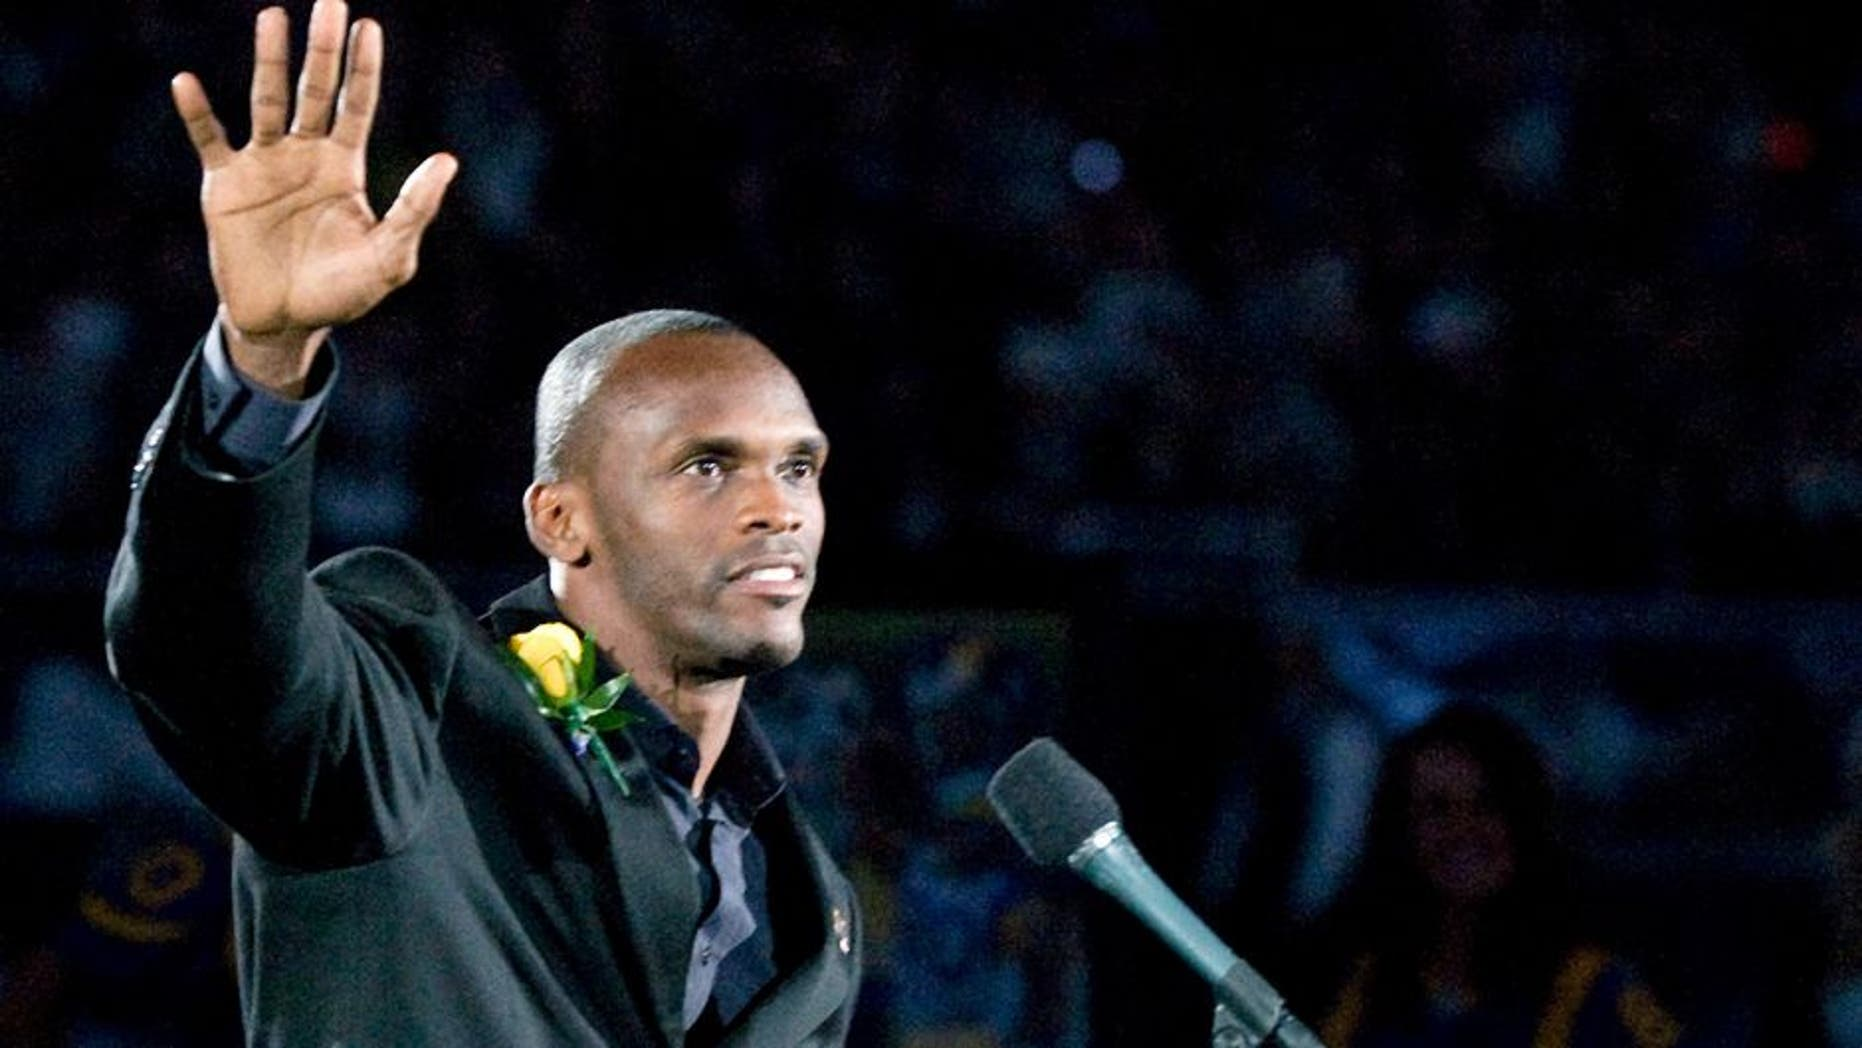 October 31, 2010; St. Louis, MO, USA; St. Louis Rams former wide receiver Isaac Bruce (80) waves to fans during a ceremony to retire his number before a game against the Carolina Panthers at the Edward Jones Dome. Mandatory Credit: Jeff Curry-USA TODAY Sports